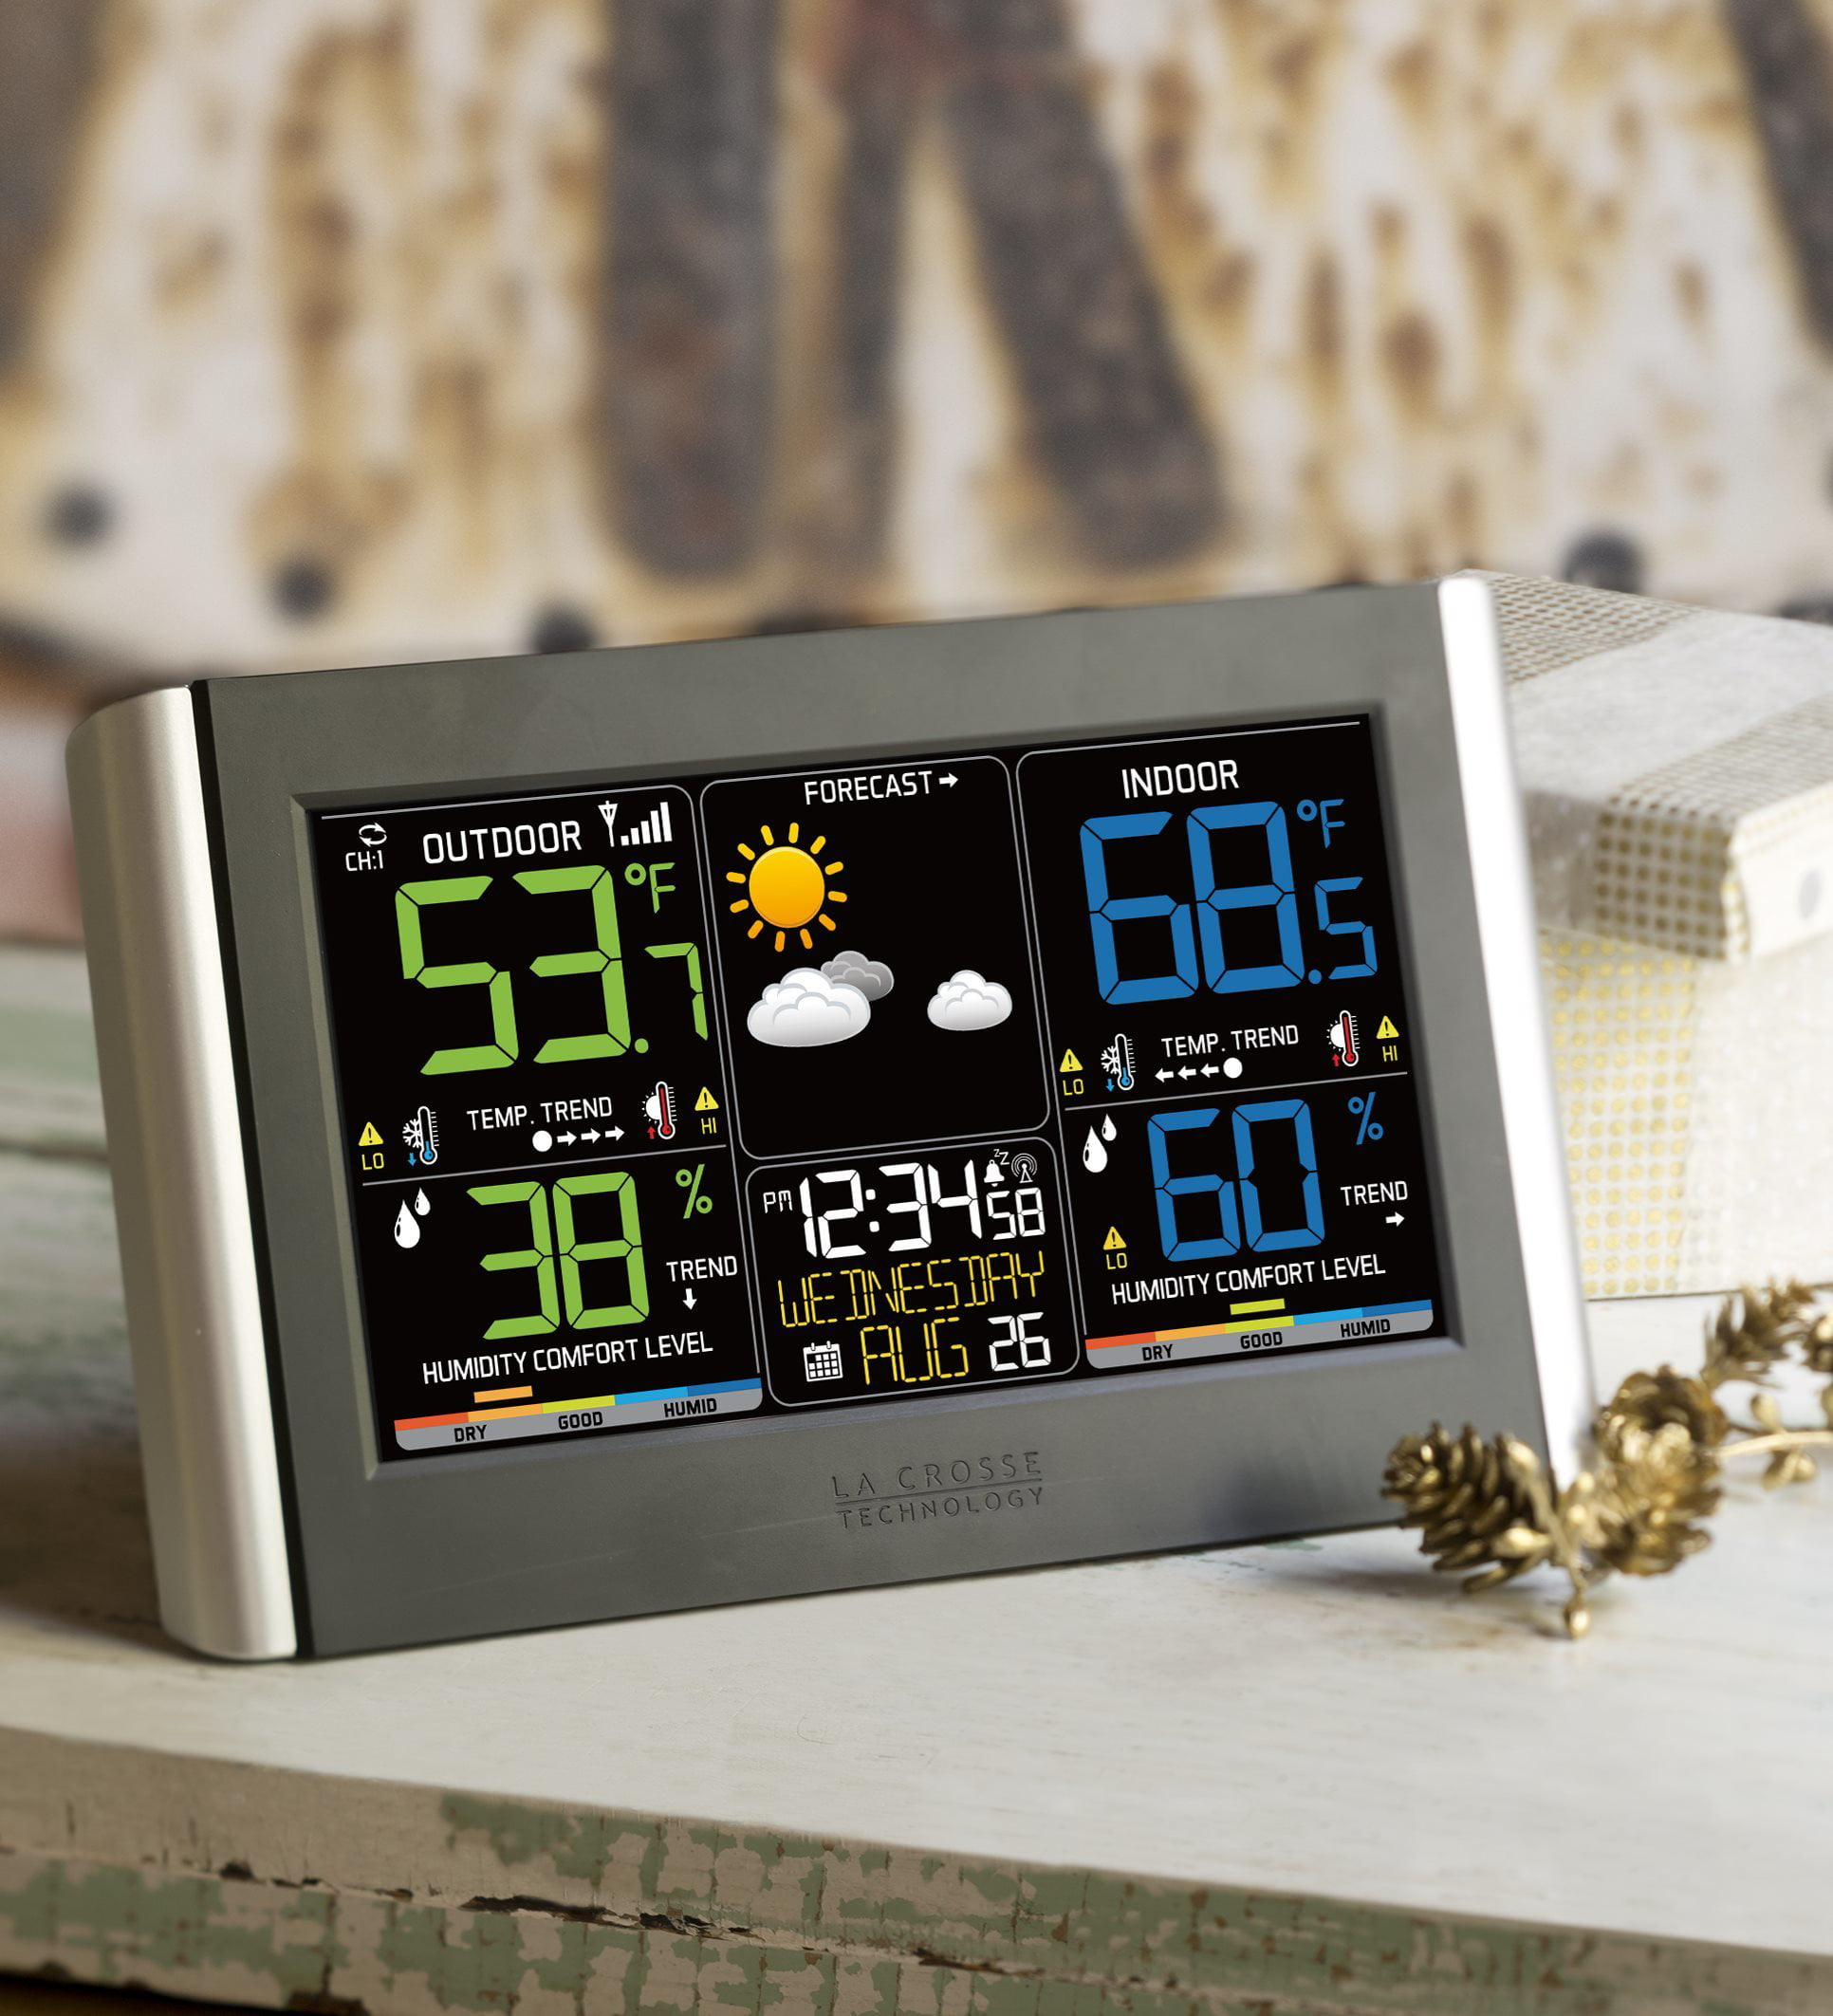 La Crosse Technology Horizontal Color Wireless Weather Station by Problem Solvers